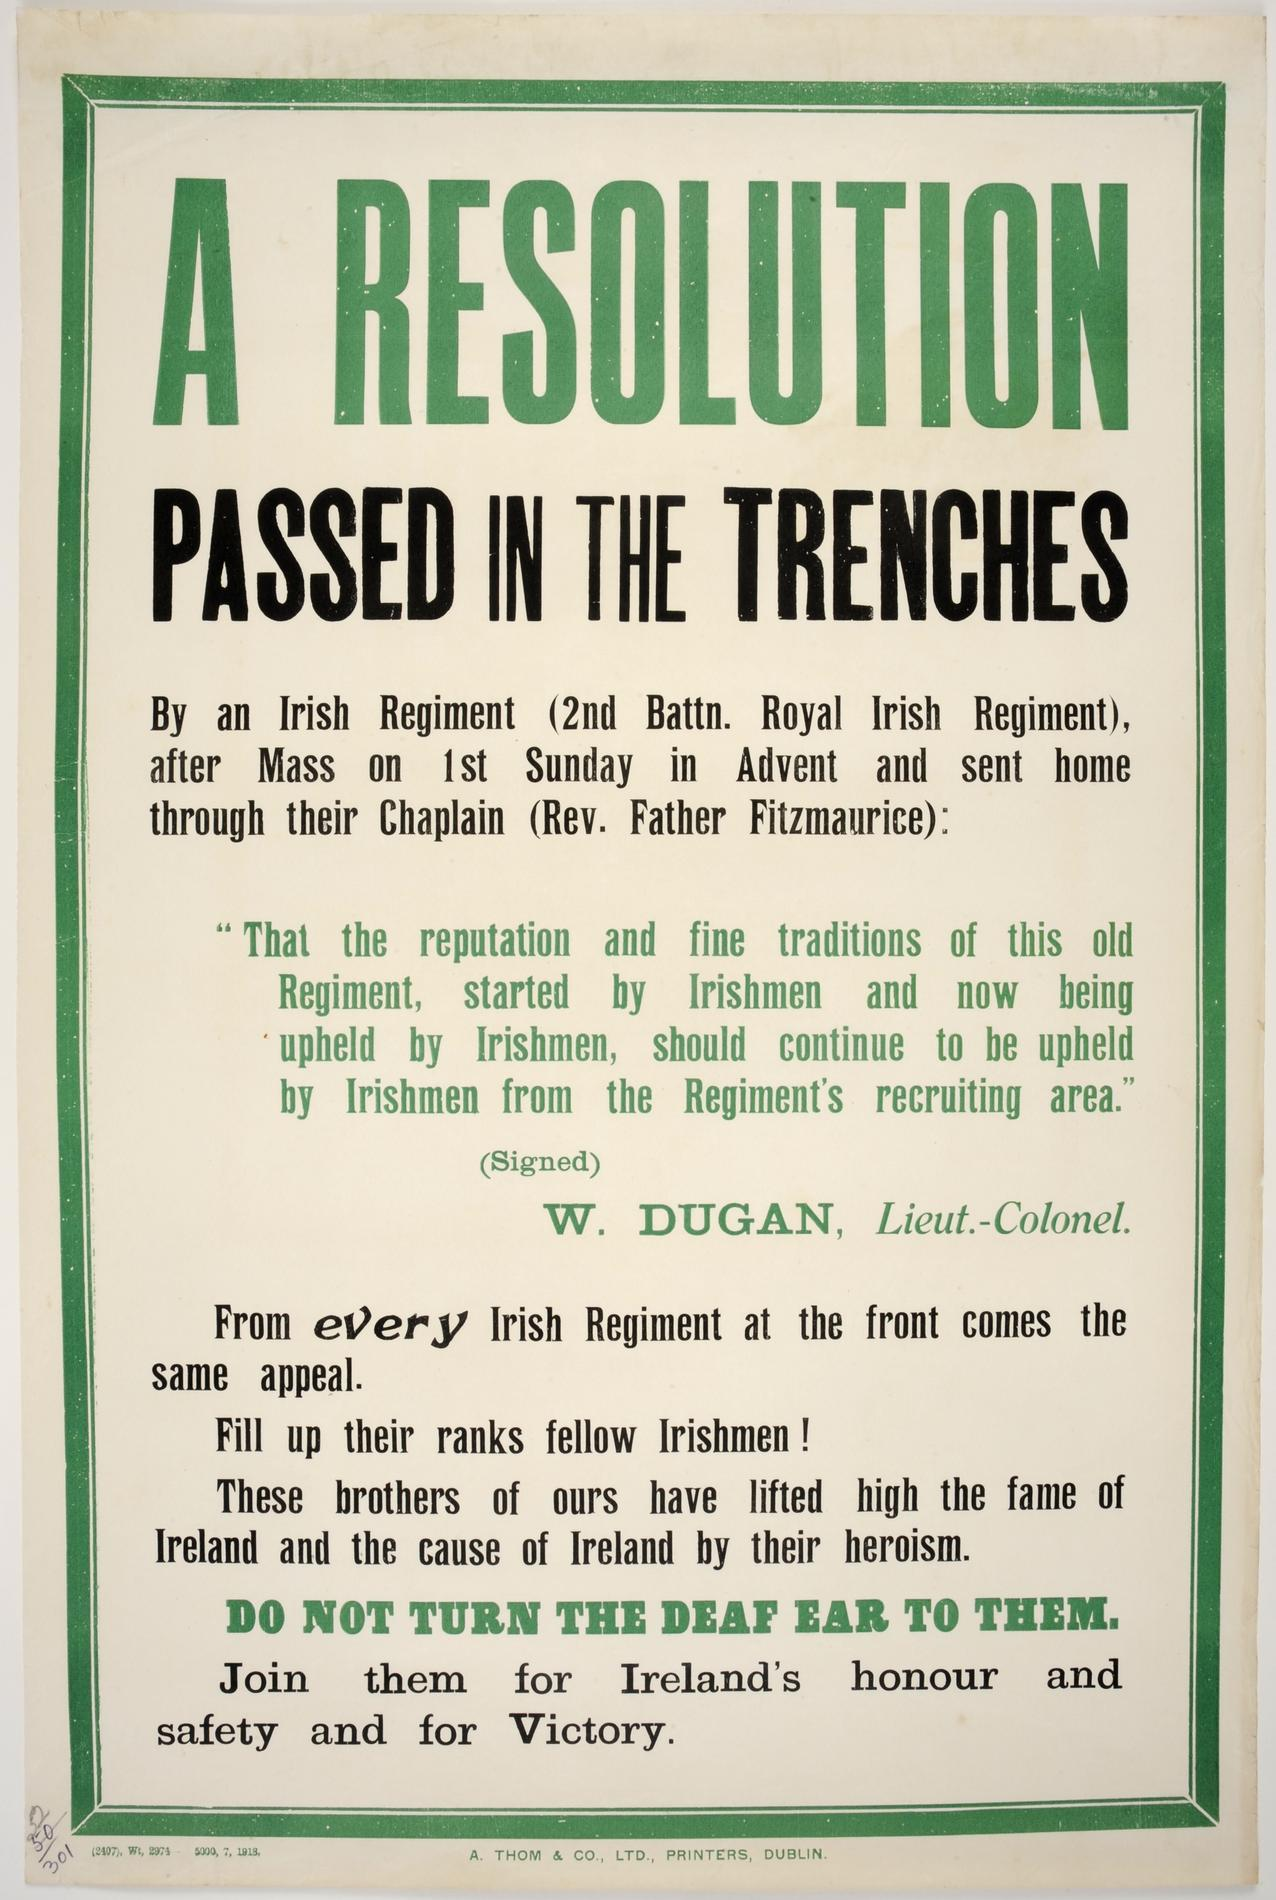 A resolution passed in the trenches'